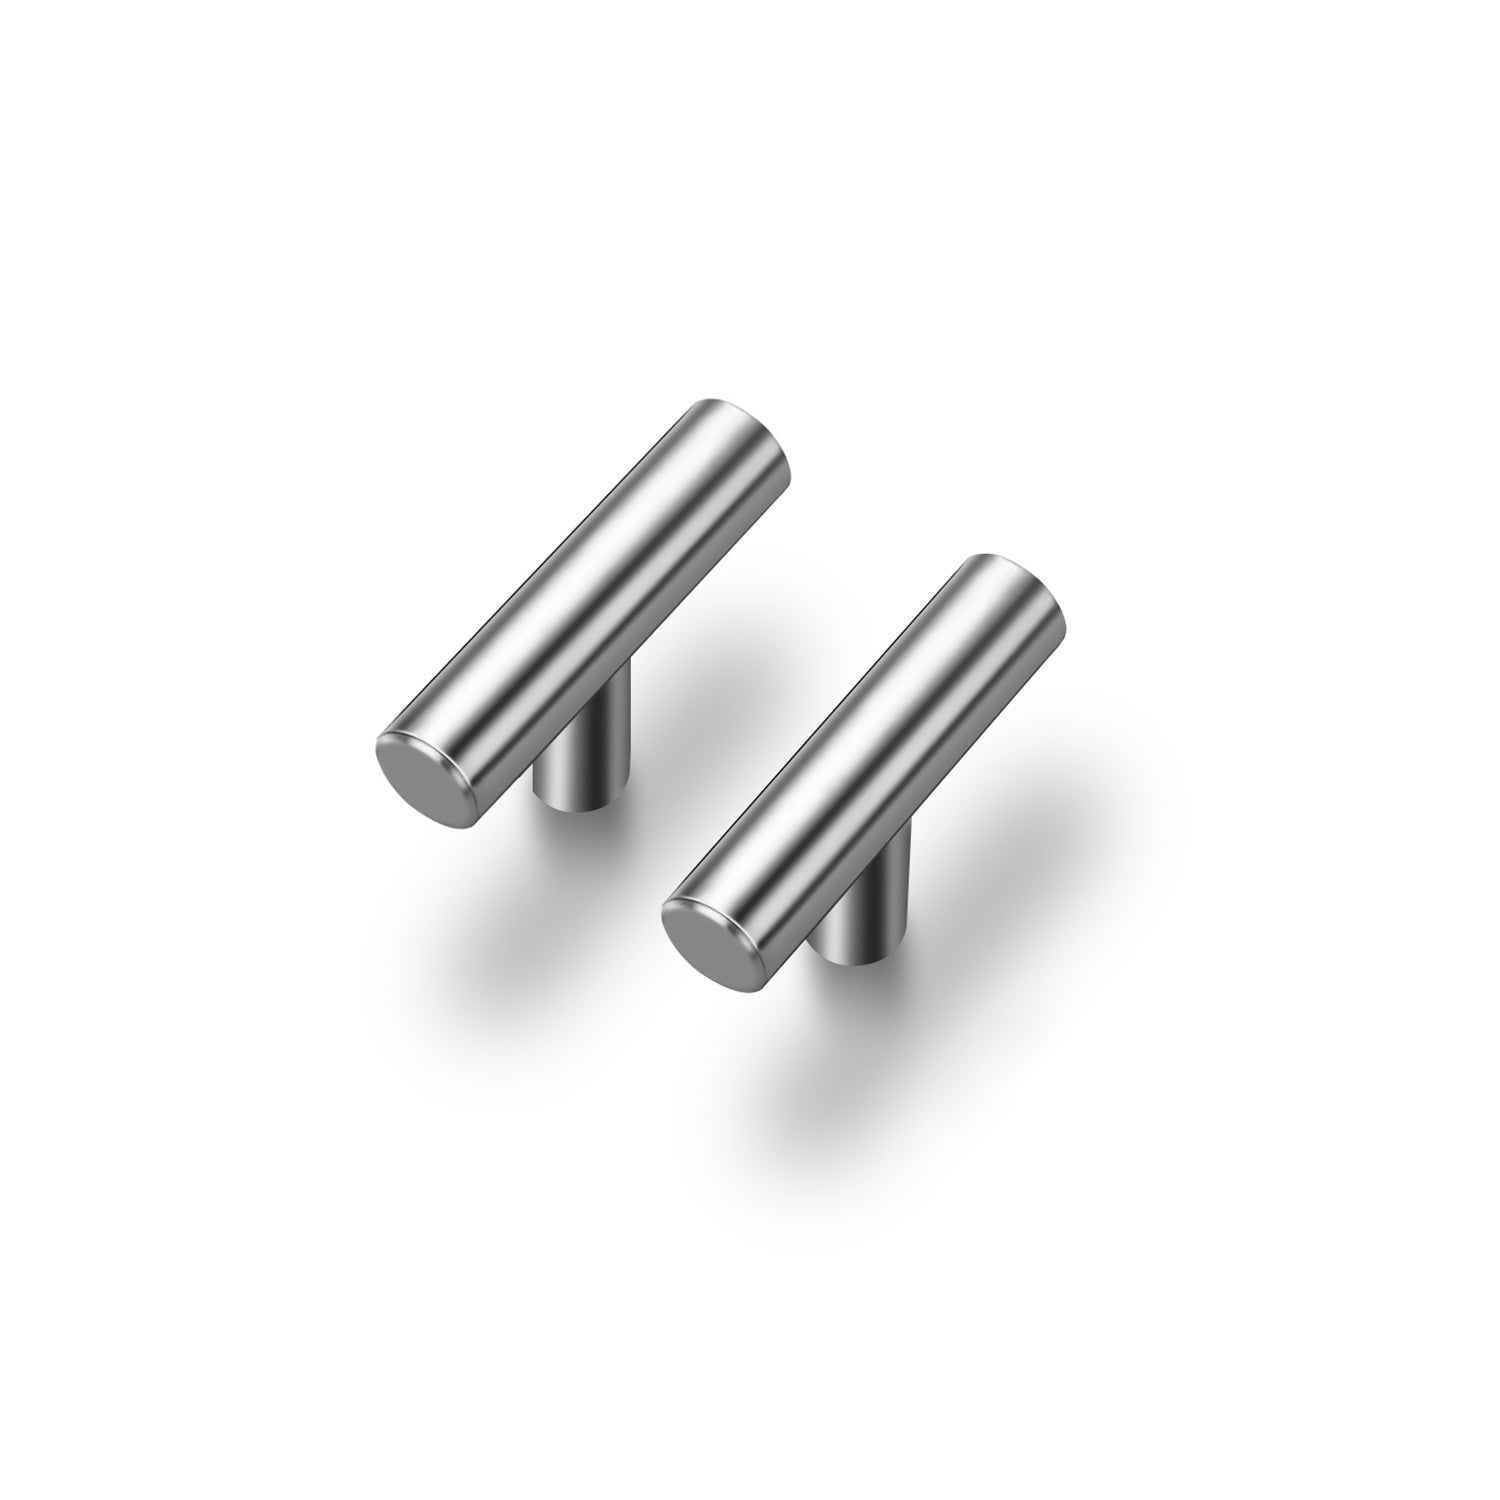 "30 Pack |2'' Cabinet Pulls Brushed Nickel Stainless Steel Kitchen Cupboard Handles Cabinet Handles 2""Length, 30-Pack"